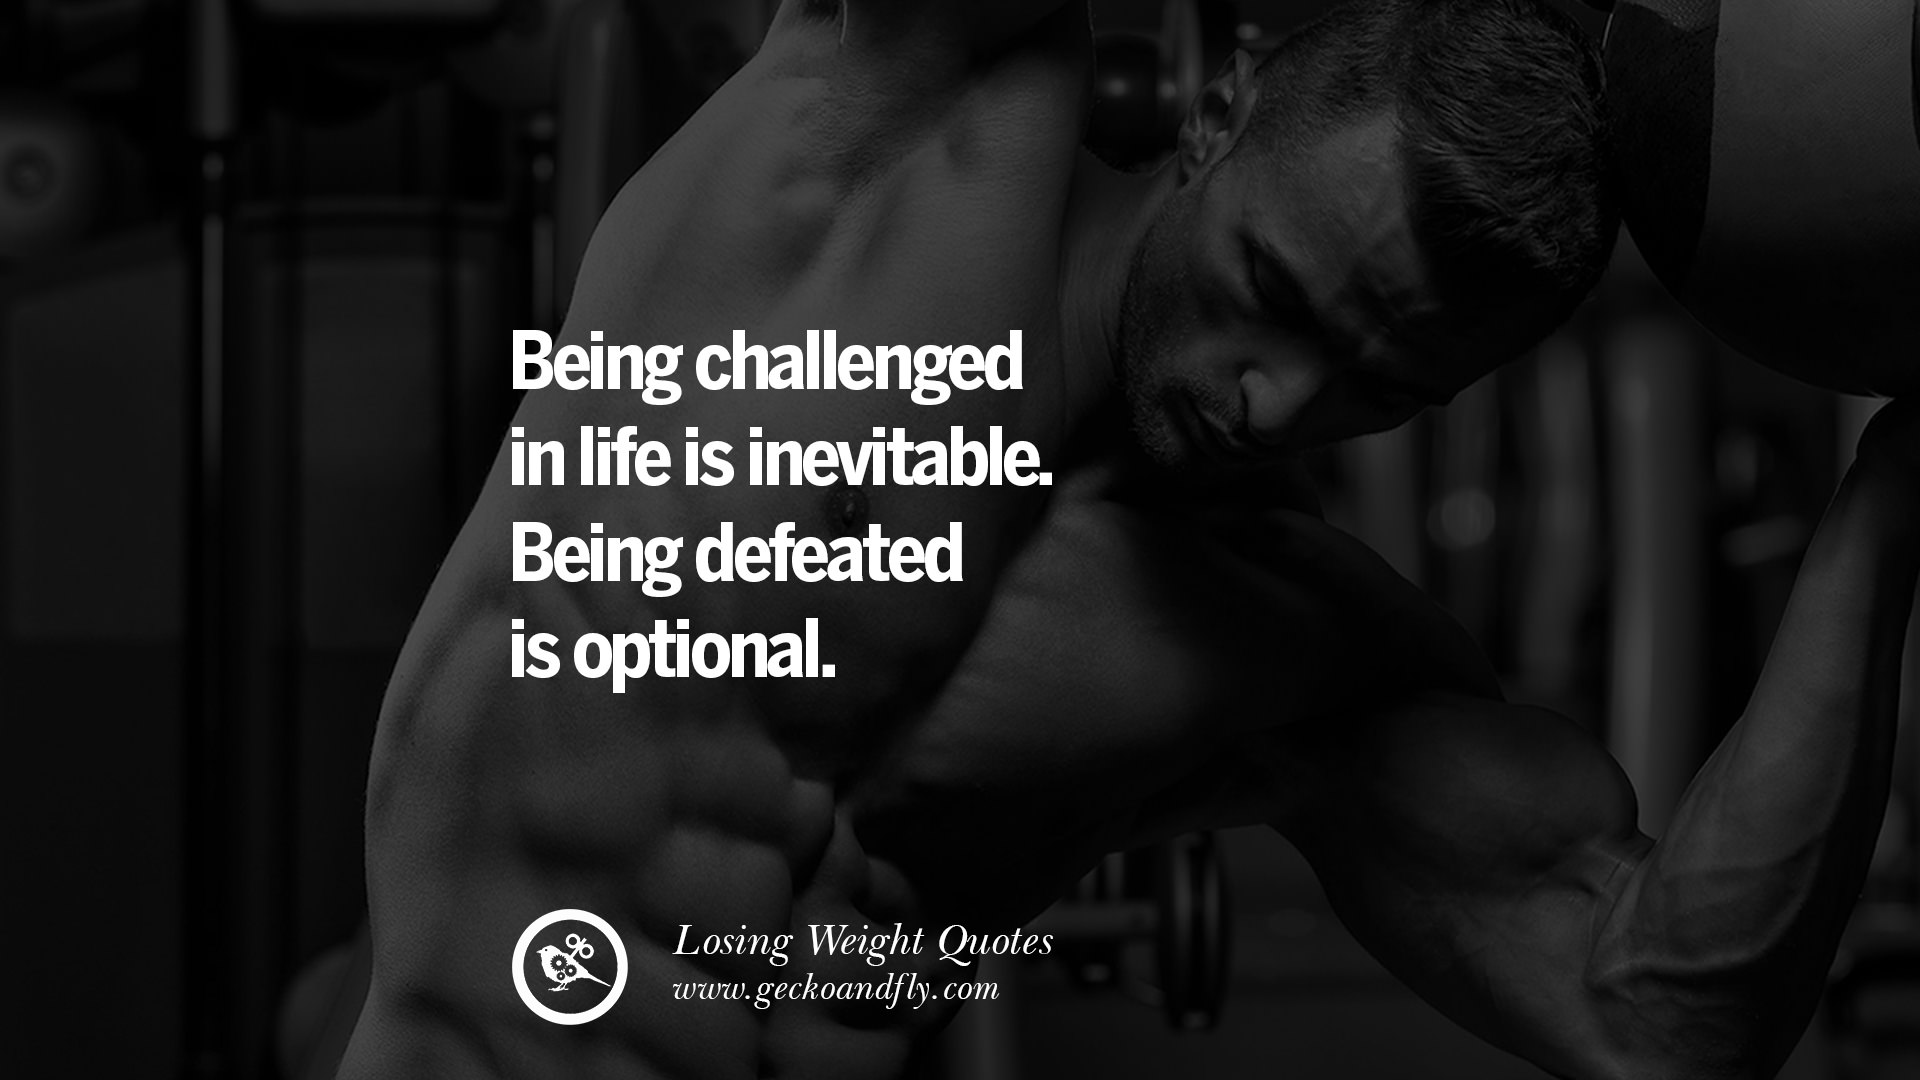 Weight Loss Quotes | 40 Motivational Quotes On Losing Weight On Diet And Never Giving Up